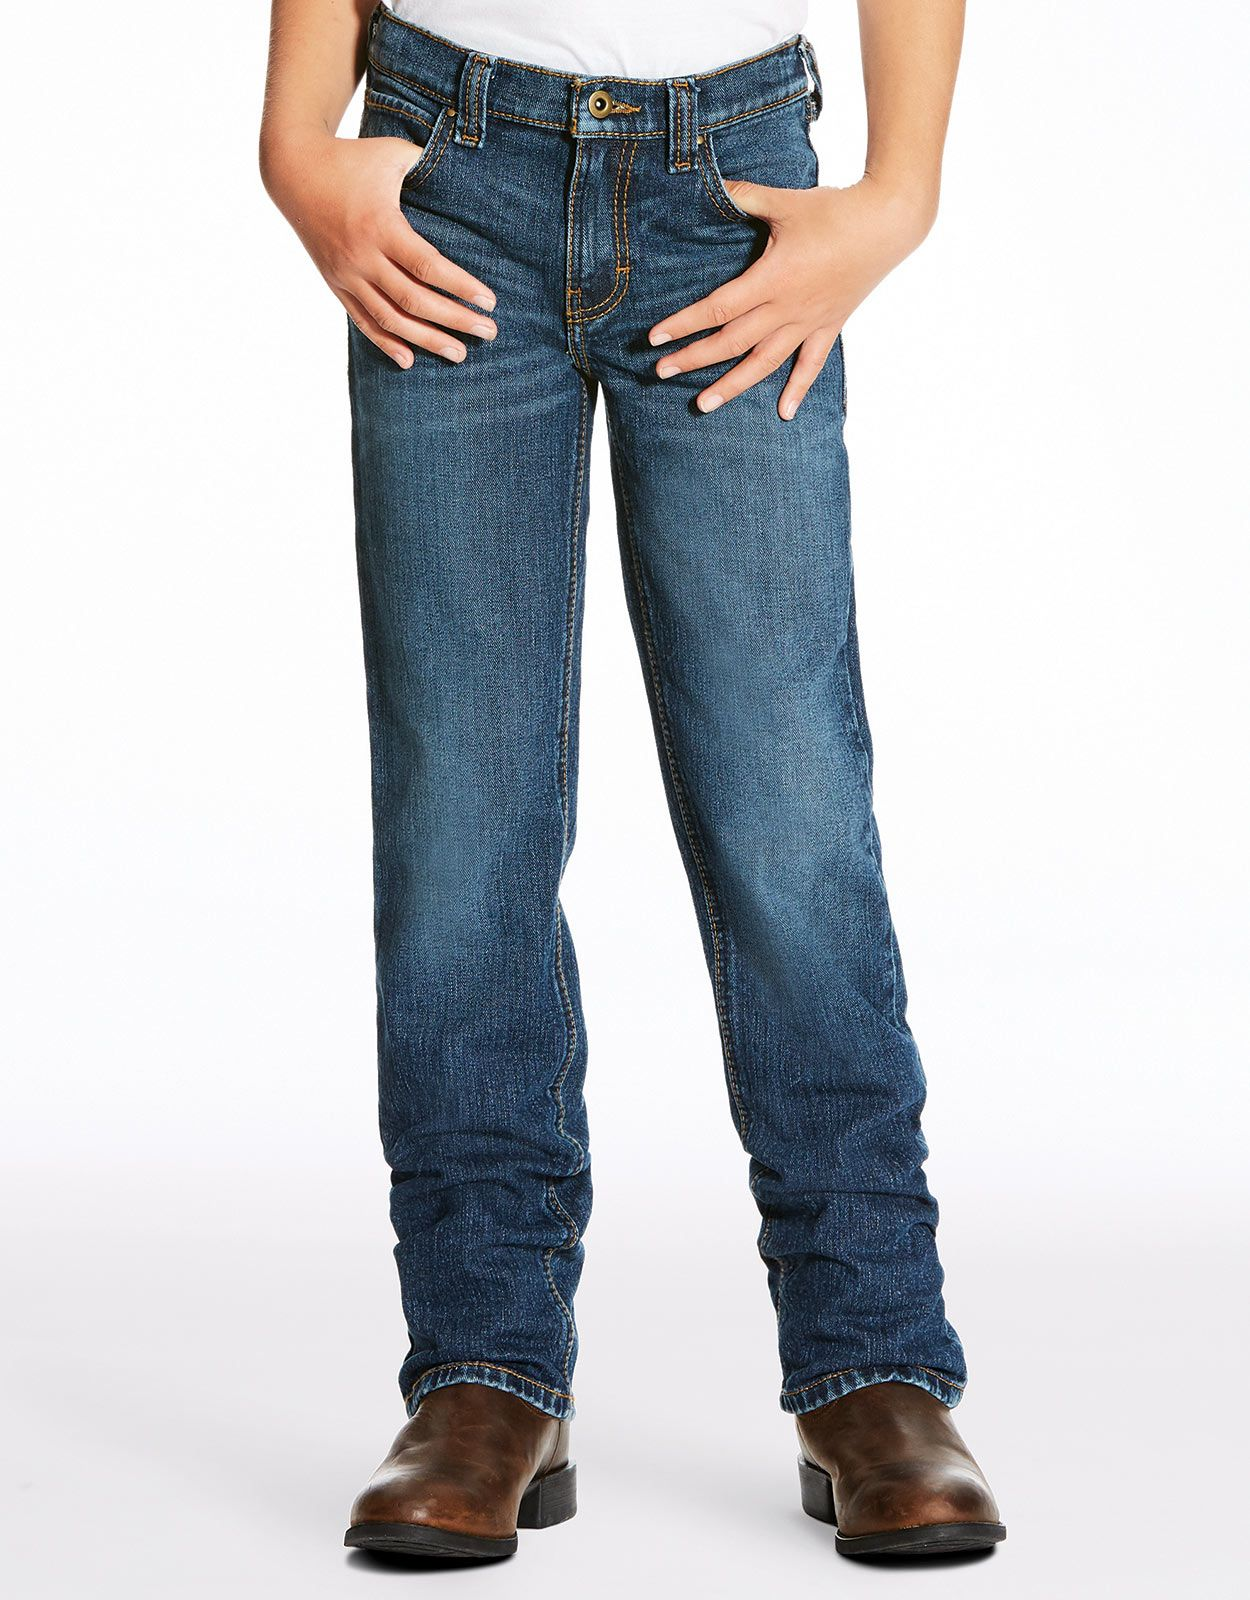 7d4f2d3de46 ariat-boy-s-b4-stretch-low-rise-relaxed-fit-boot-cut-jeans -dark-stonewash-7.jpg